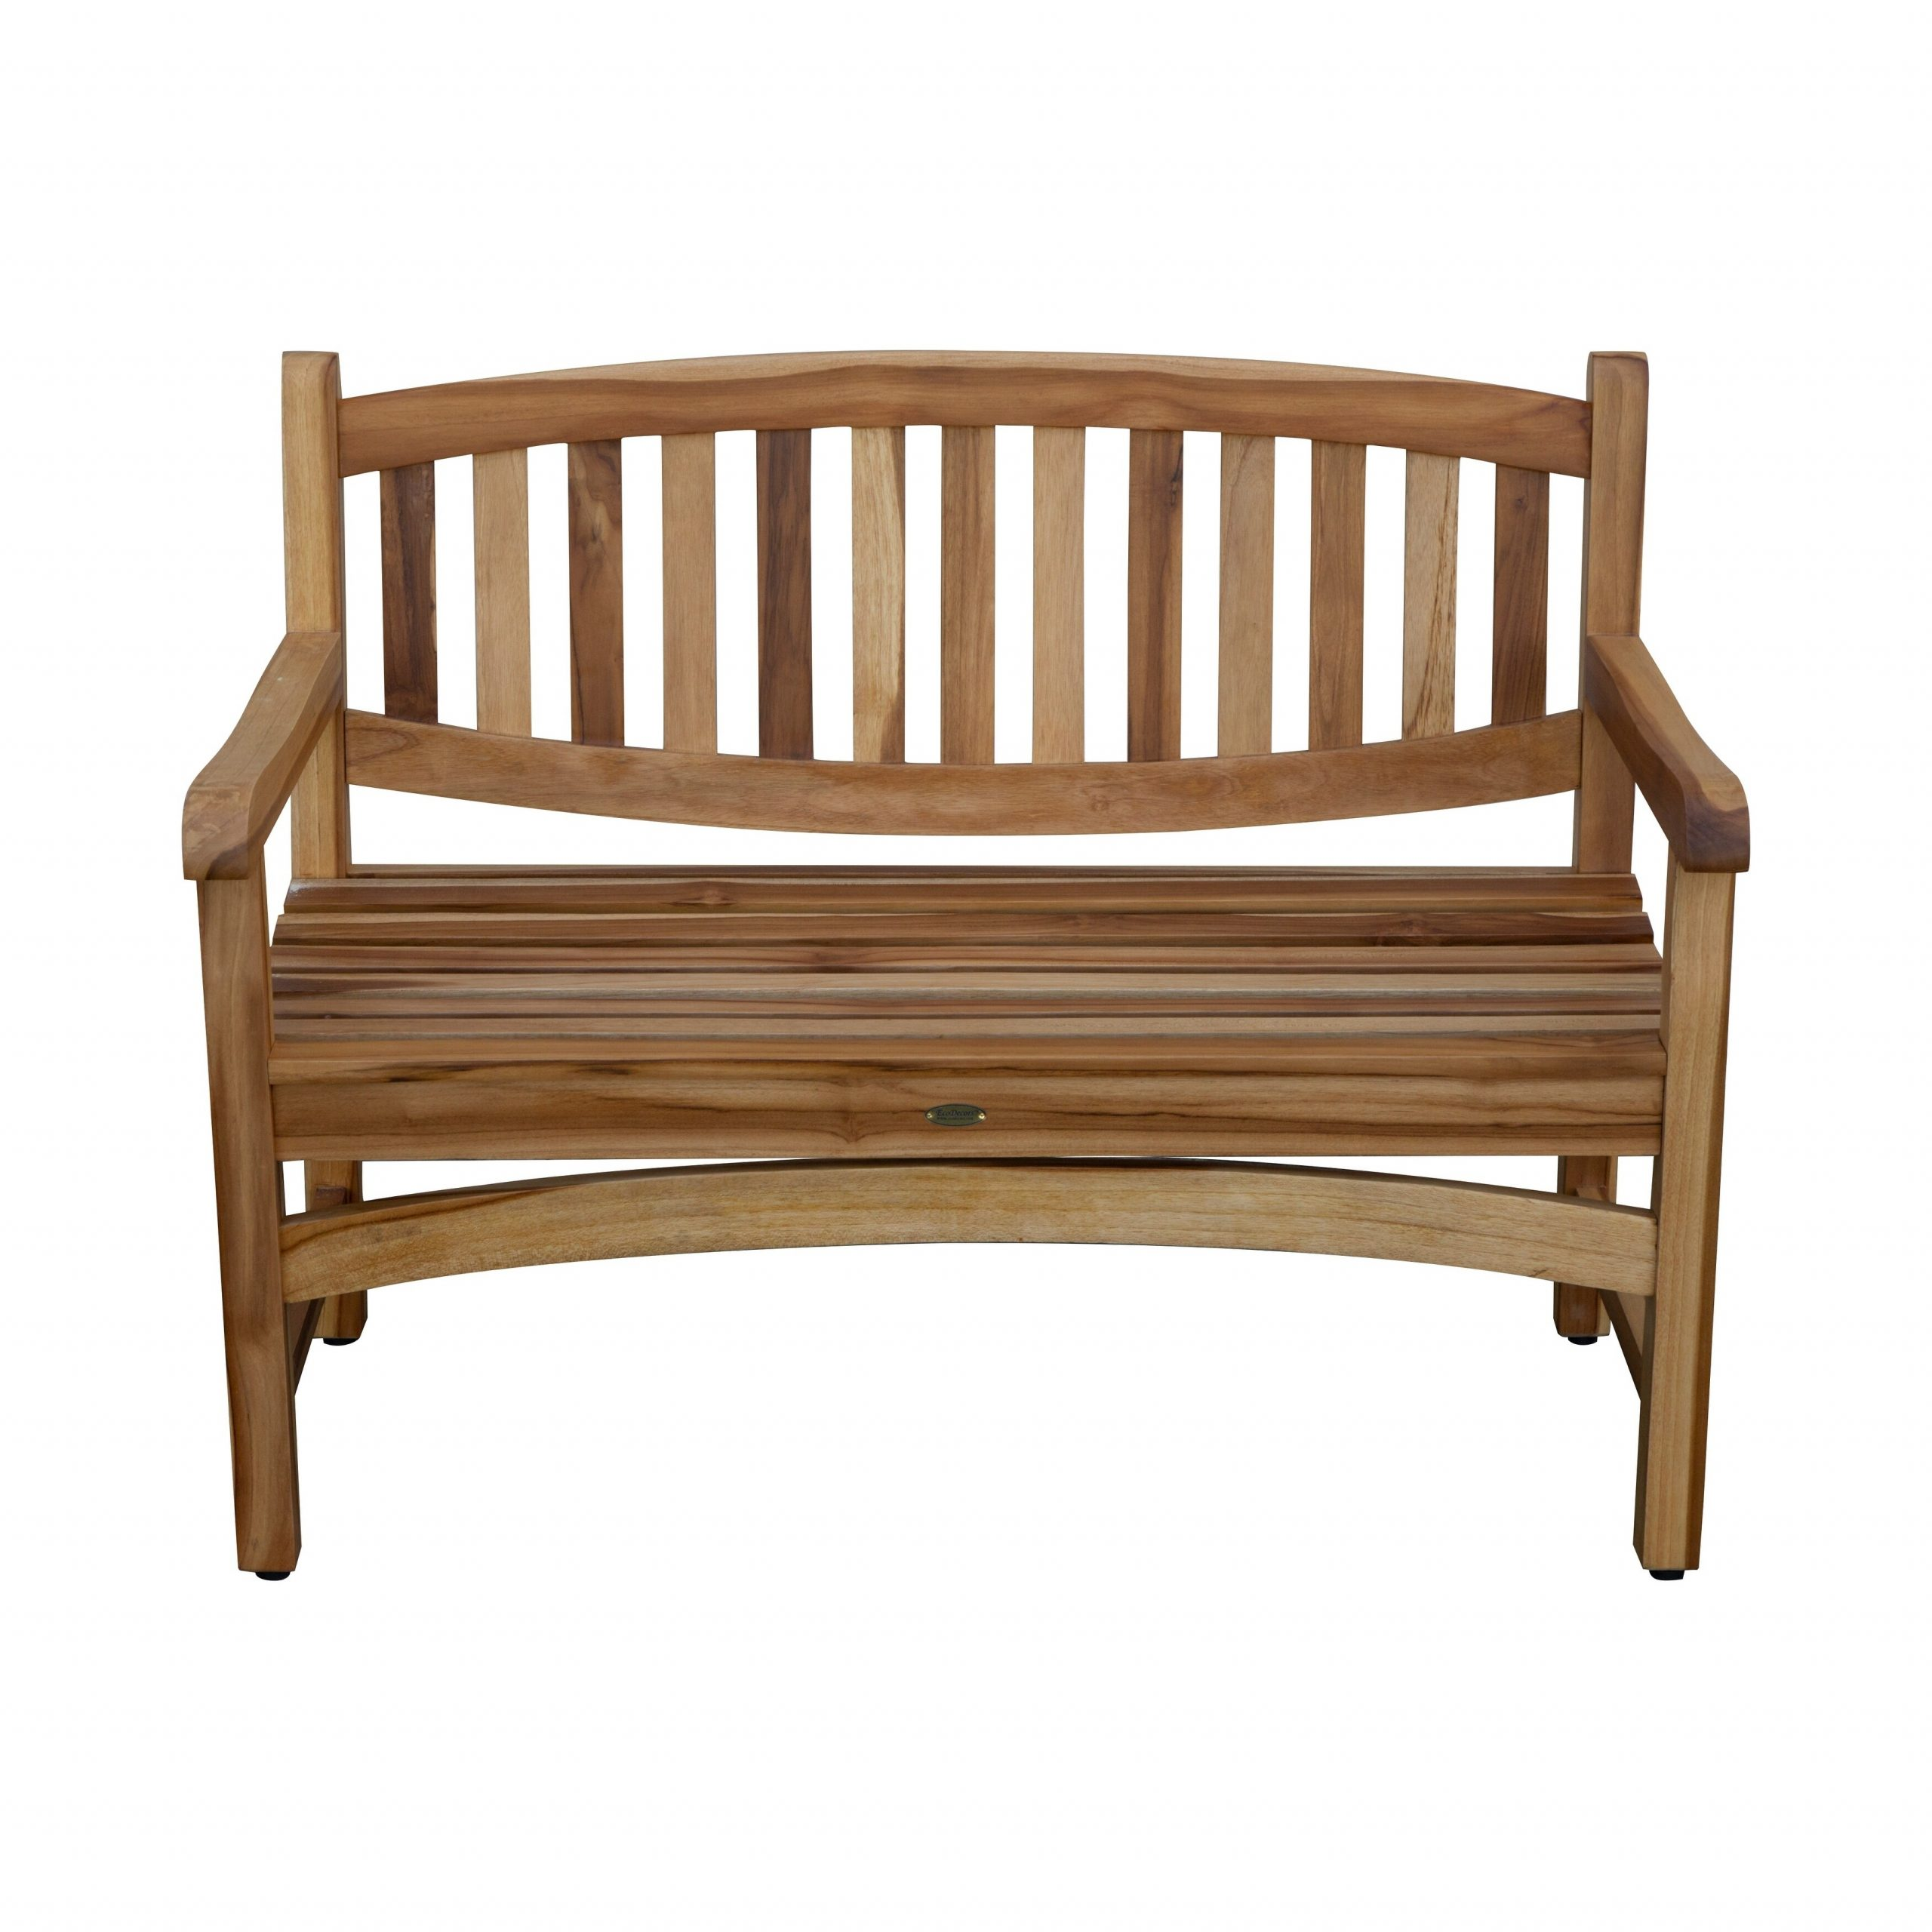 "47"" Ecodecors Kent Garden Indoor Or Outdoor Solid Teak Bench In Earthyteak Finish With Hampstead Teak Garden Benches (View 15 of 25)"